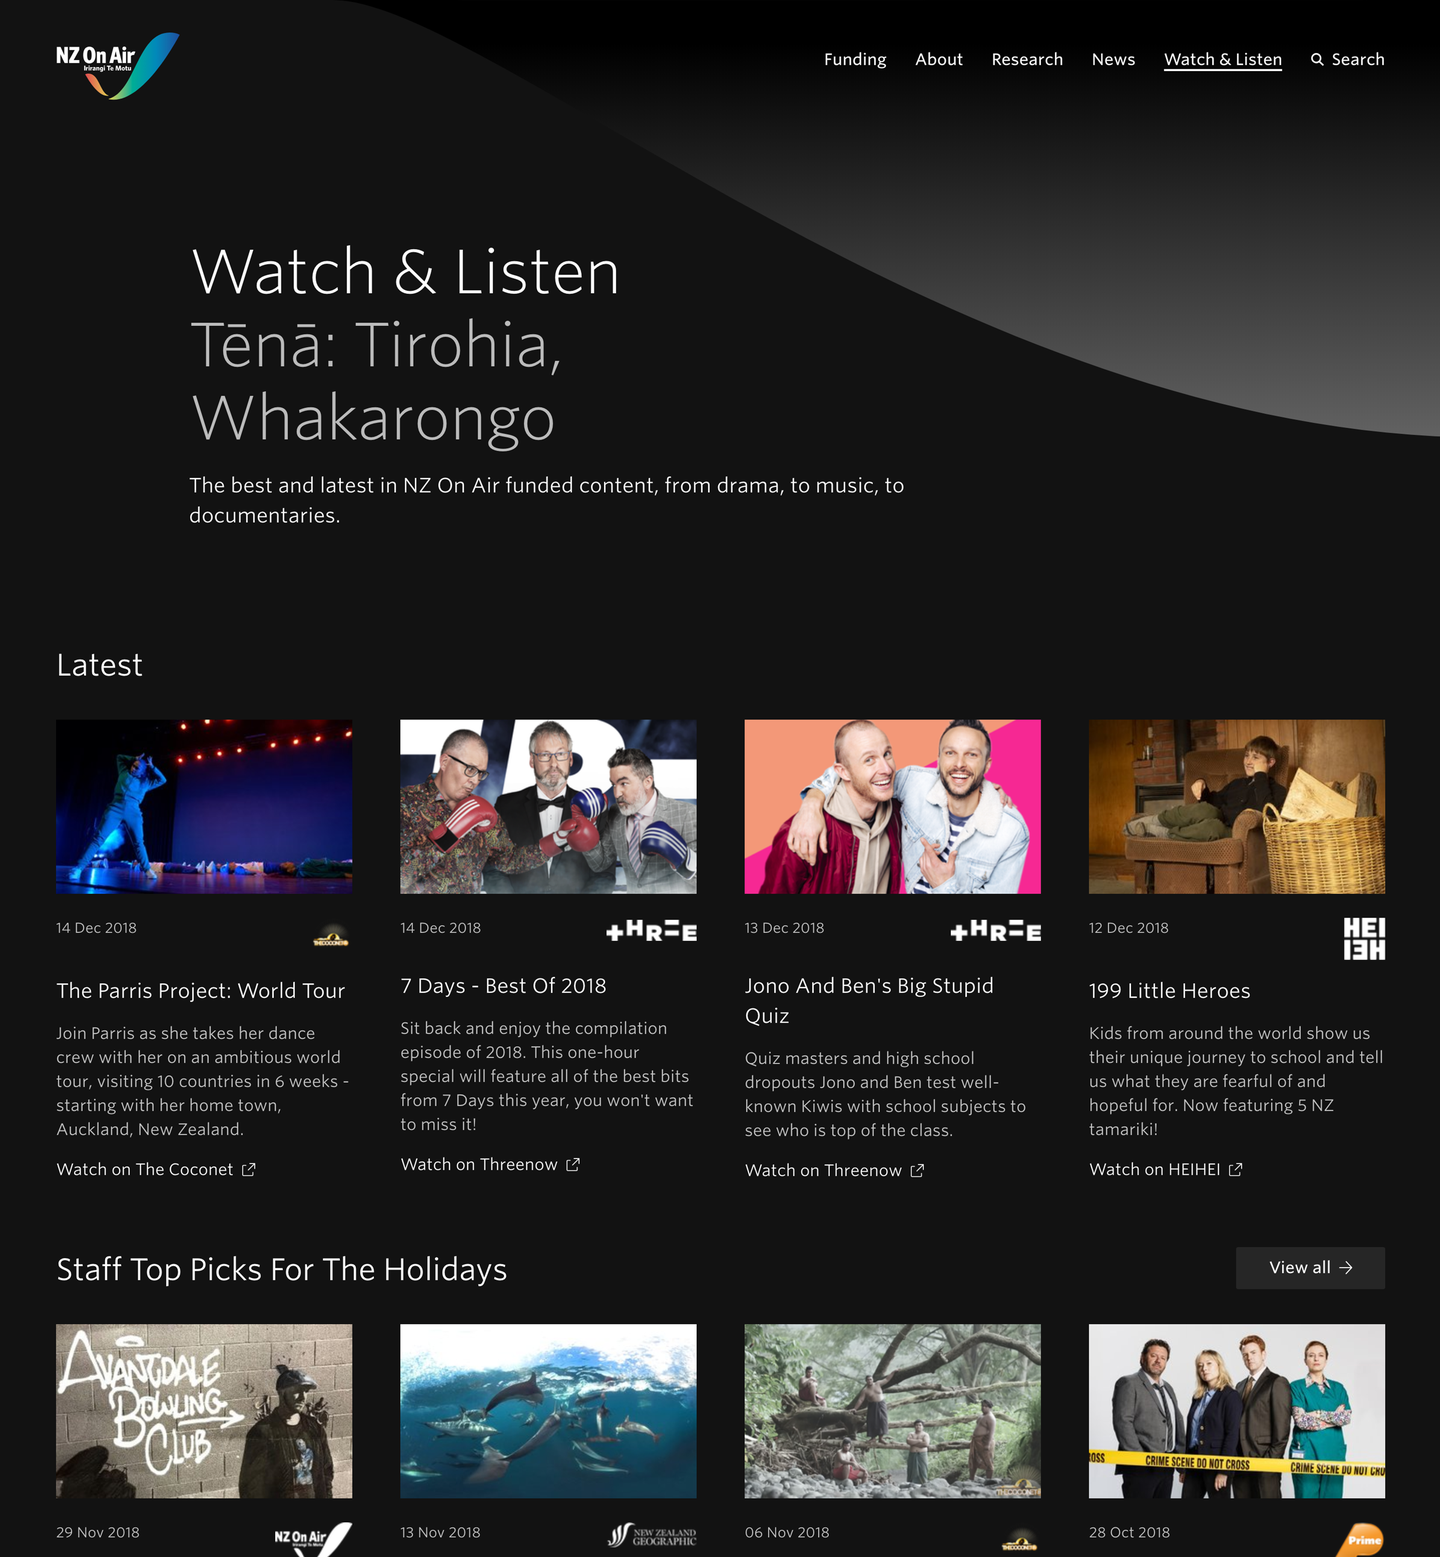 Screenshot of the Watch & Listen page